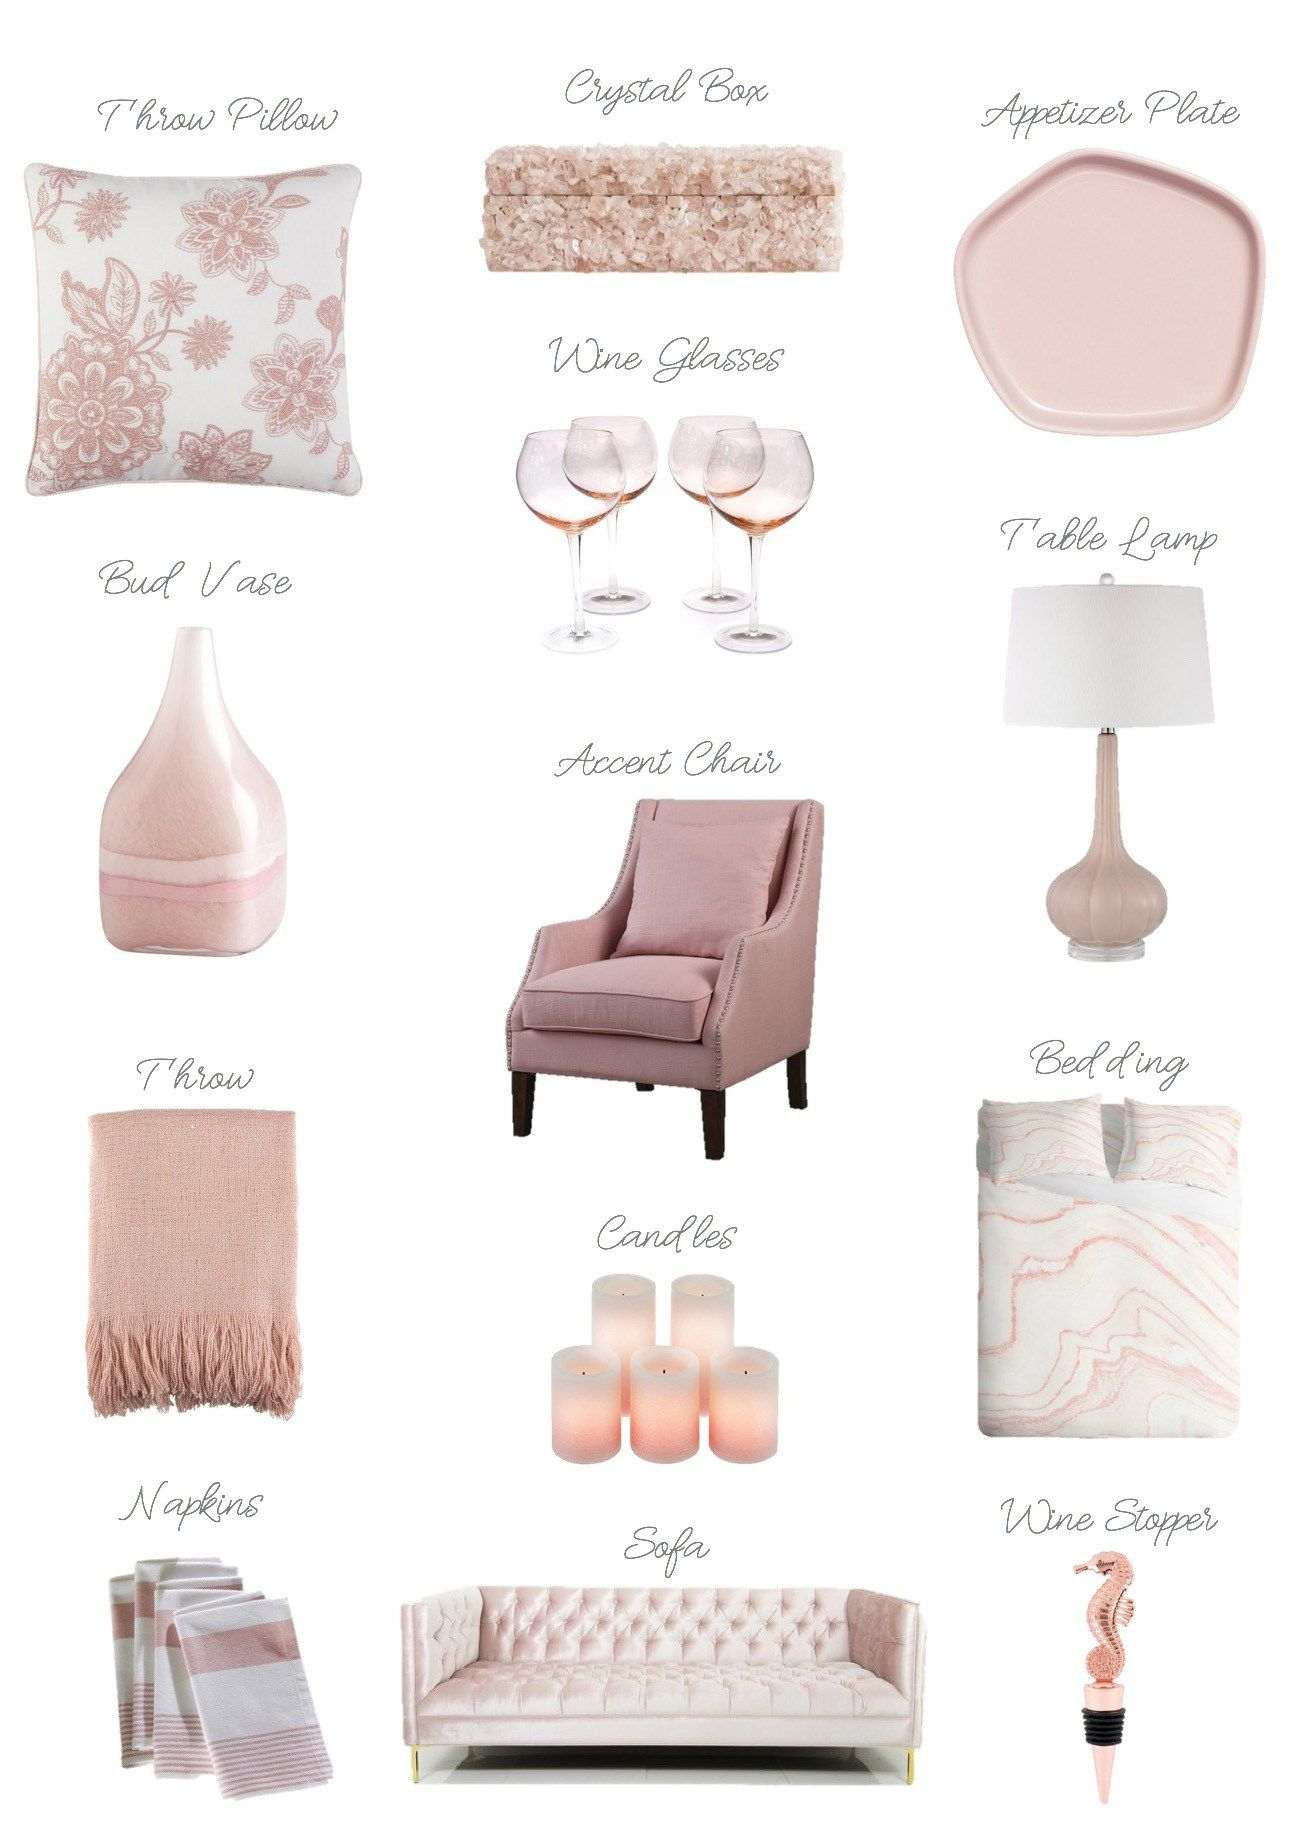 Blush Pink Is A New Home Decor Neutral Pink Home Decor Home Decor Home Decor Styles